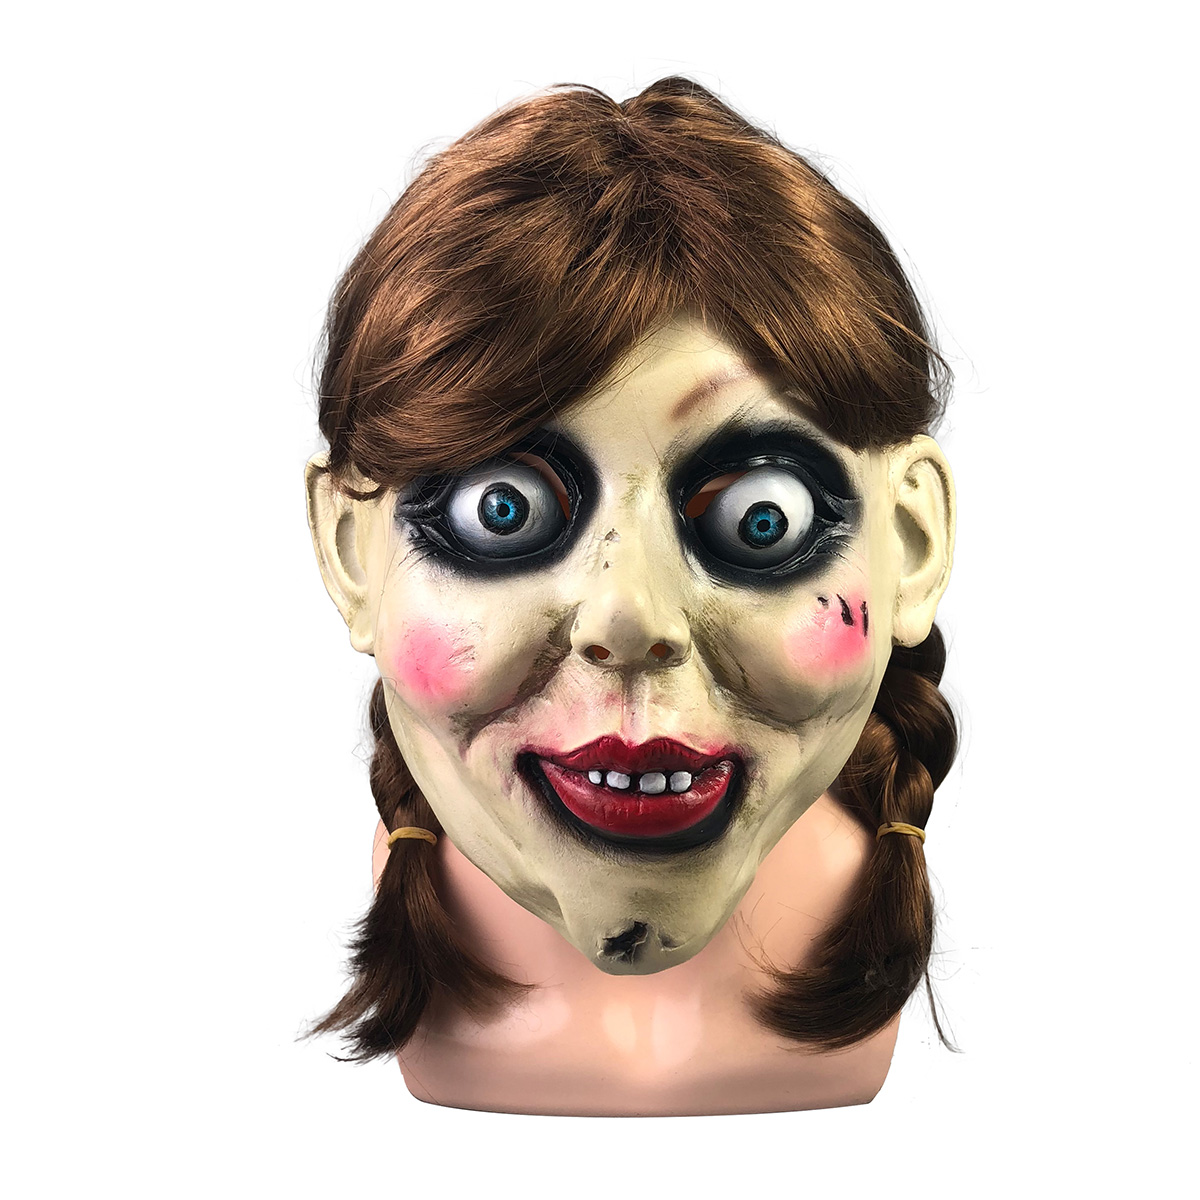 Yacn NEW Annabelle Cosplay Mask Latex Cosplay Halloween Scary Movie Adult Full Head Latex Wigs Ponytails Props Party image